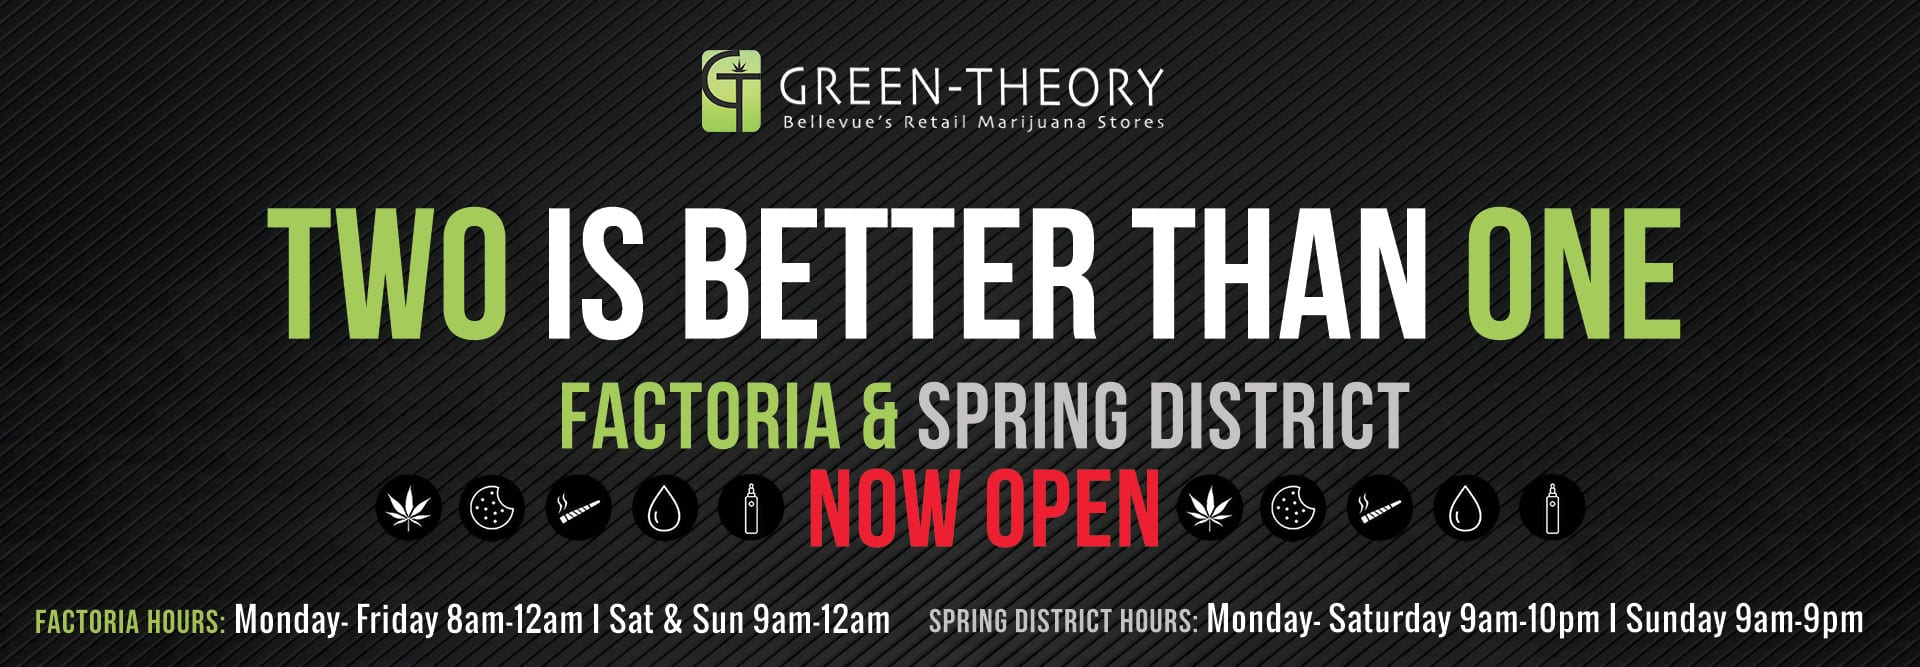 green-theory-spring-district-factoria-now-open